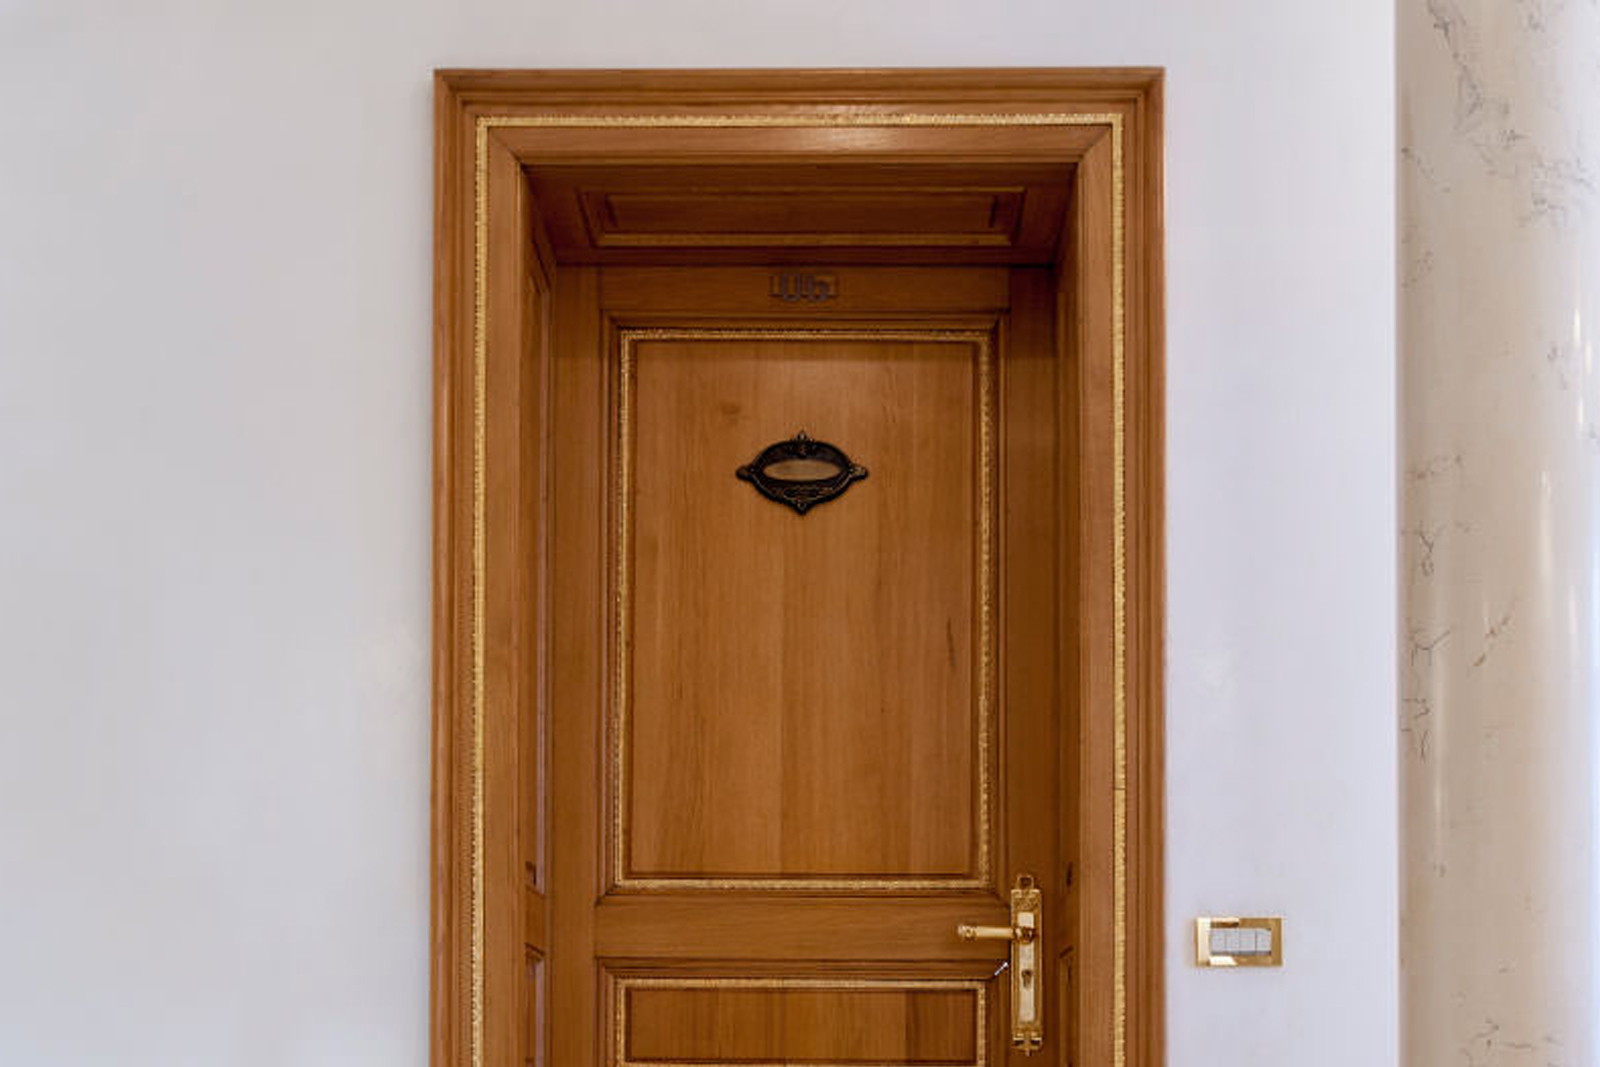 Wood fire-rated door frame in historic building